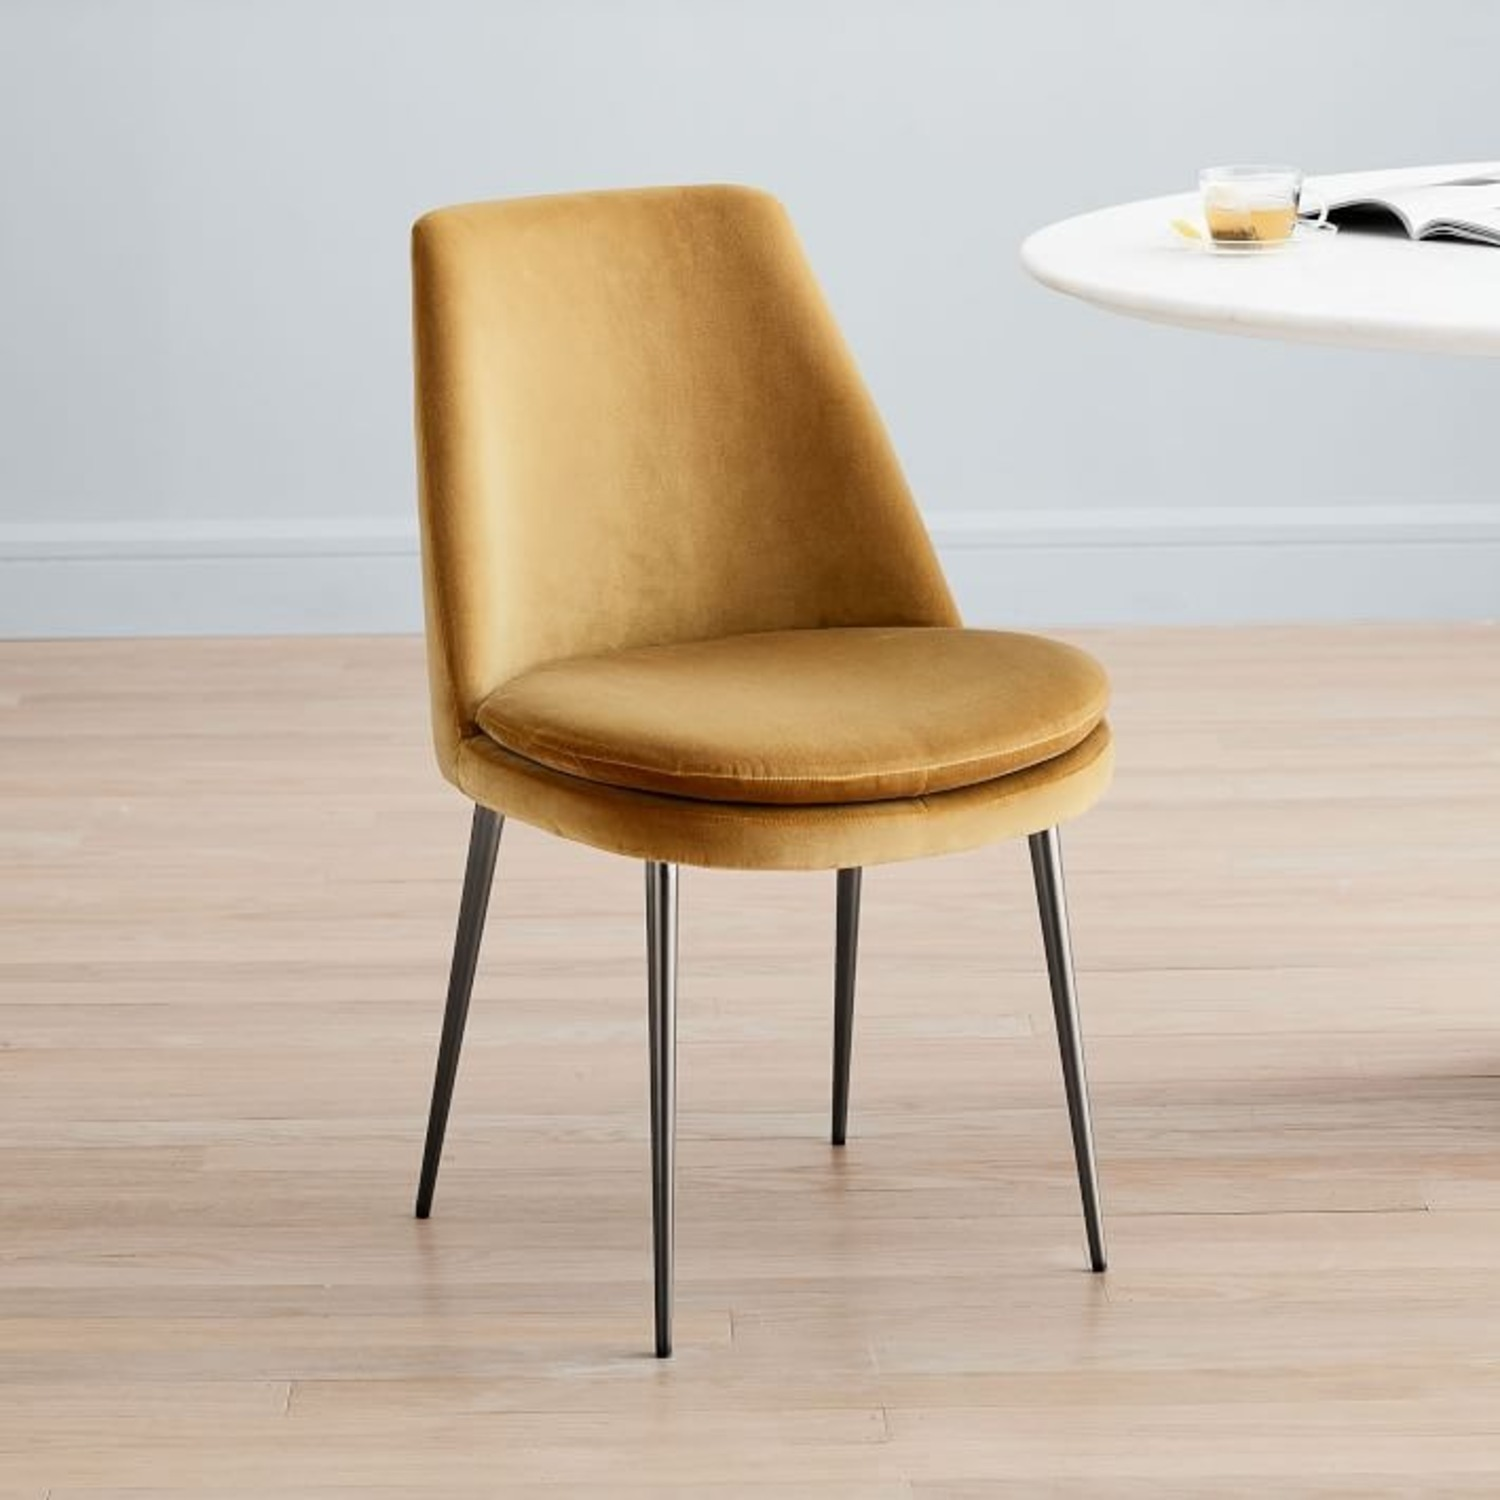 West Elm Finley Low-Back Upholstered Dining Chair